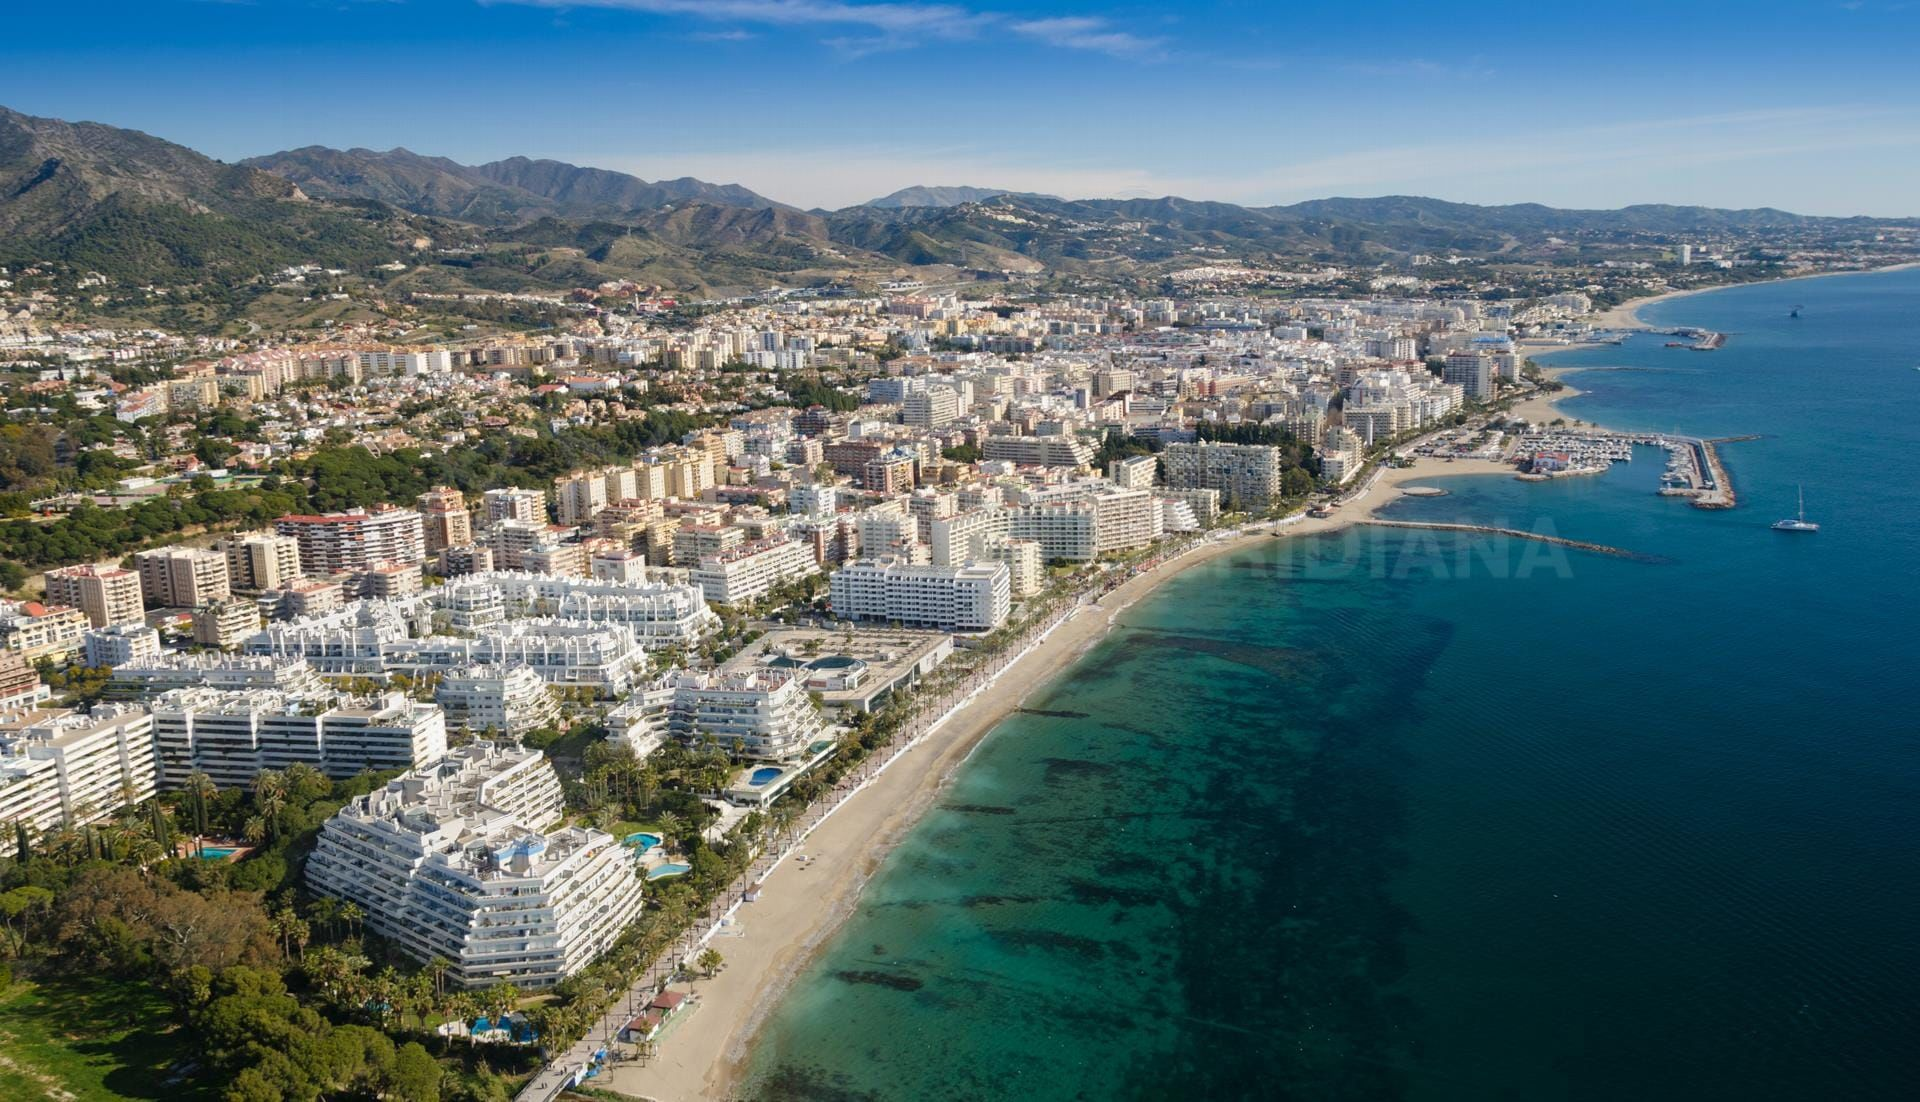 SPAIN AND COSTA DEL SOL RESIDENTIAL PROPERTY MARKET REPORT 2016